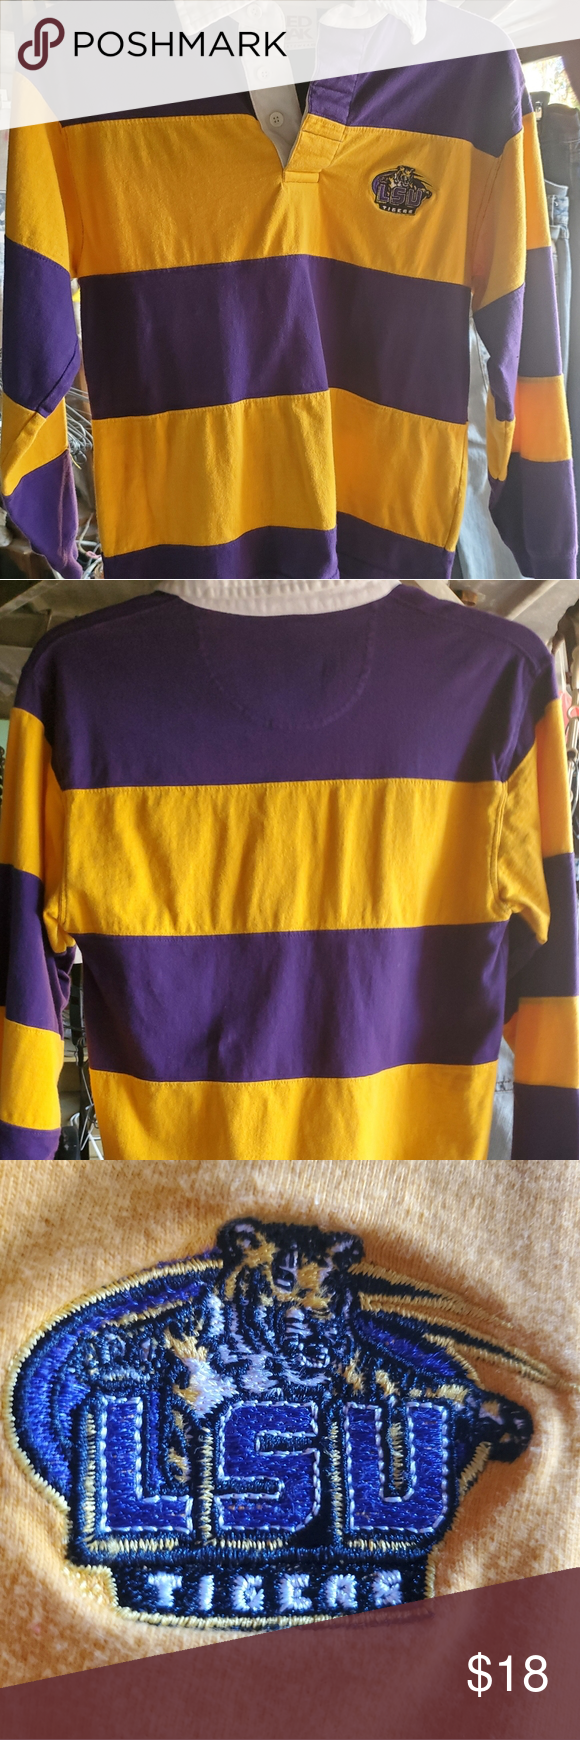 Childrens New Lsu Rugby Shirt Size